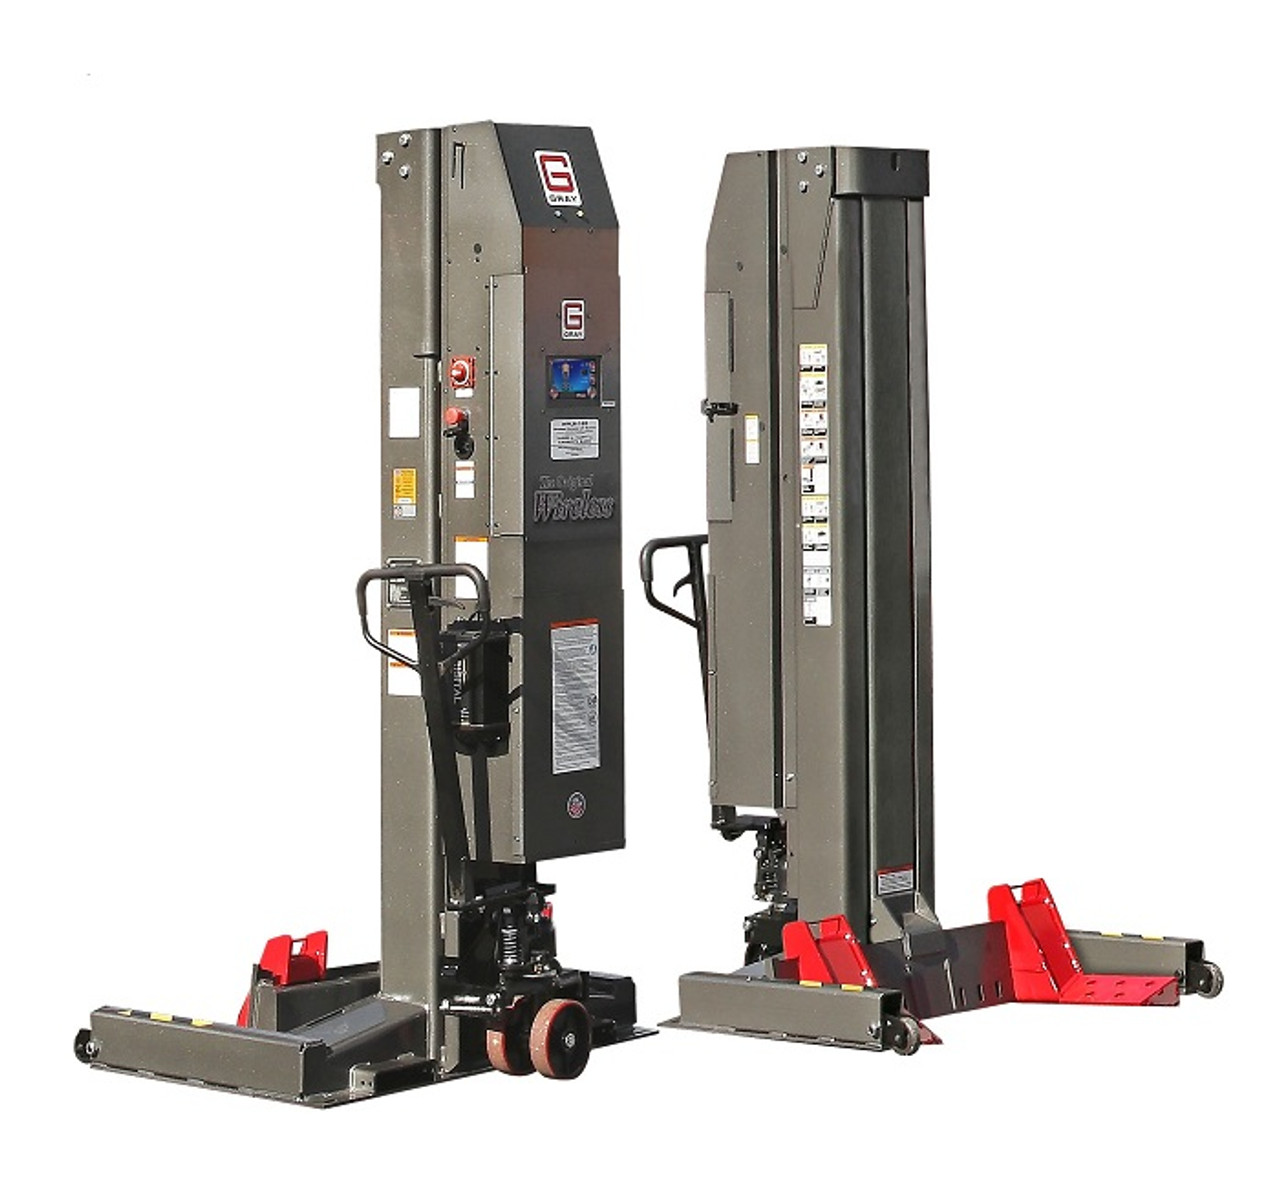 Gray WPLS-190W 19,000LB Wide Wireless Portable Lift System (1 post)  (US MADE)